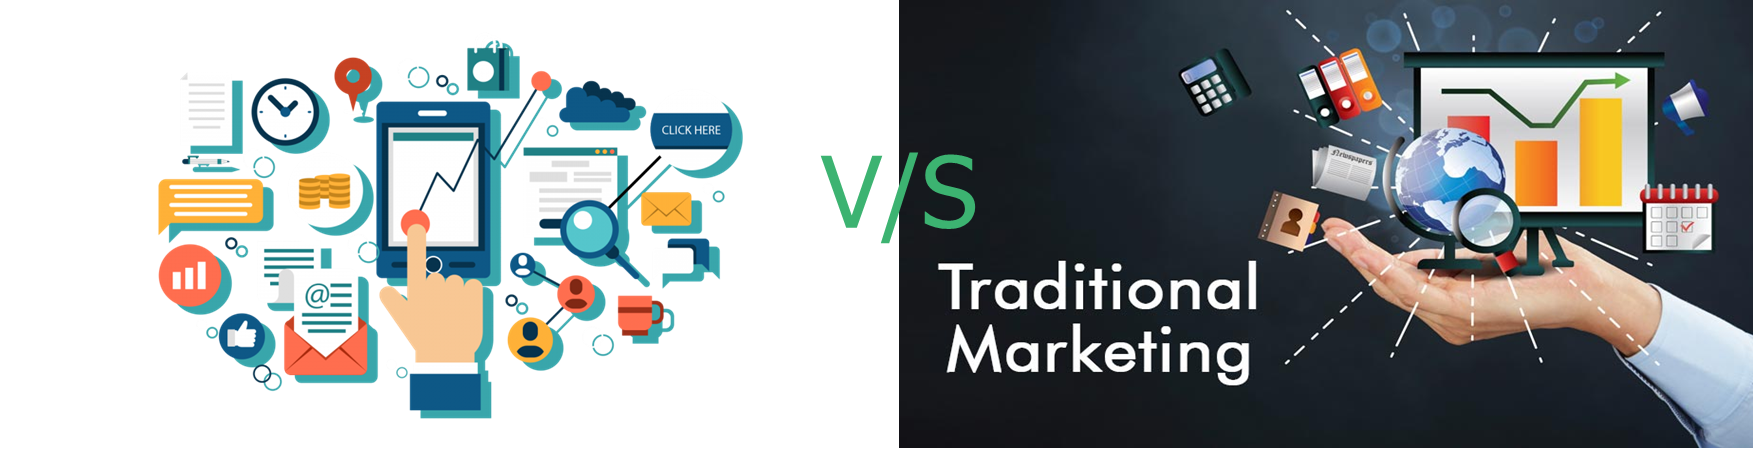 Difference Between Traditional Marketing and Digital Marketing